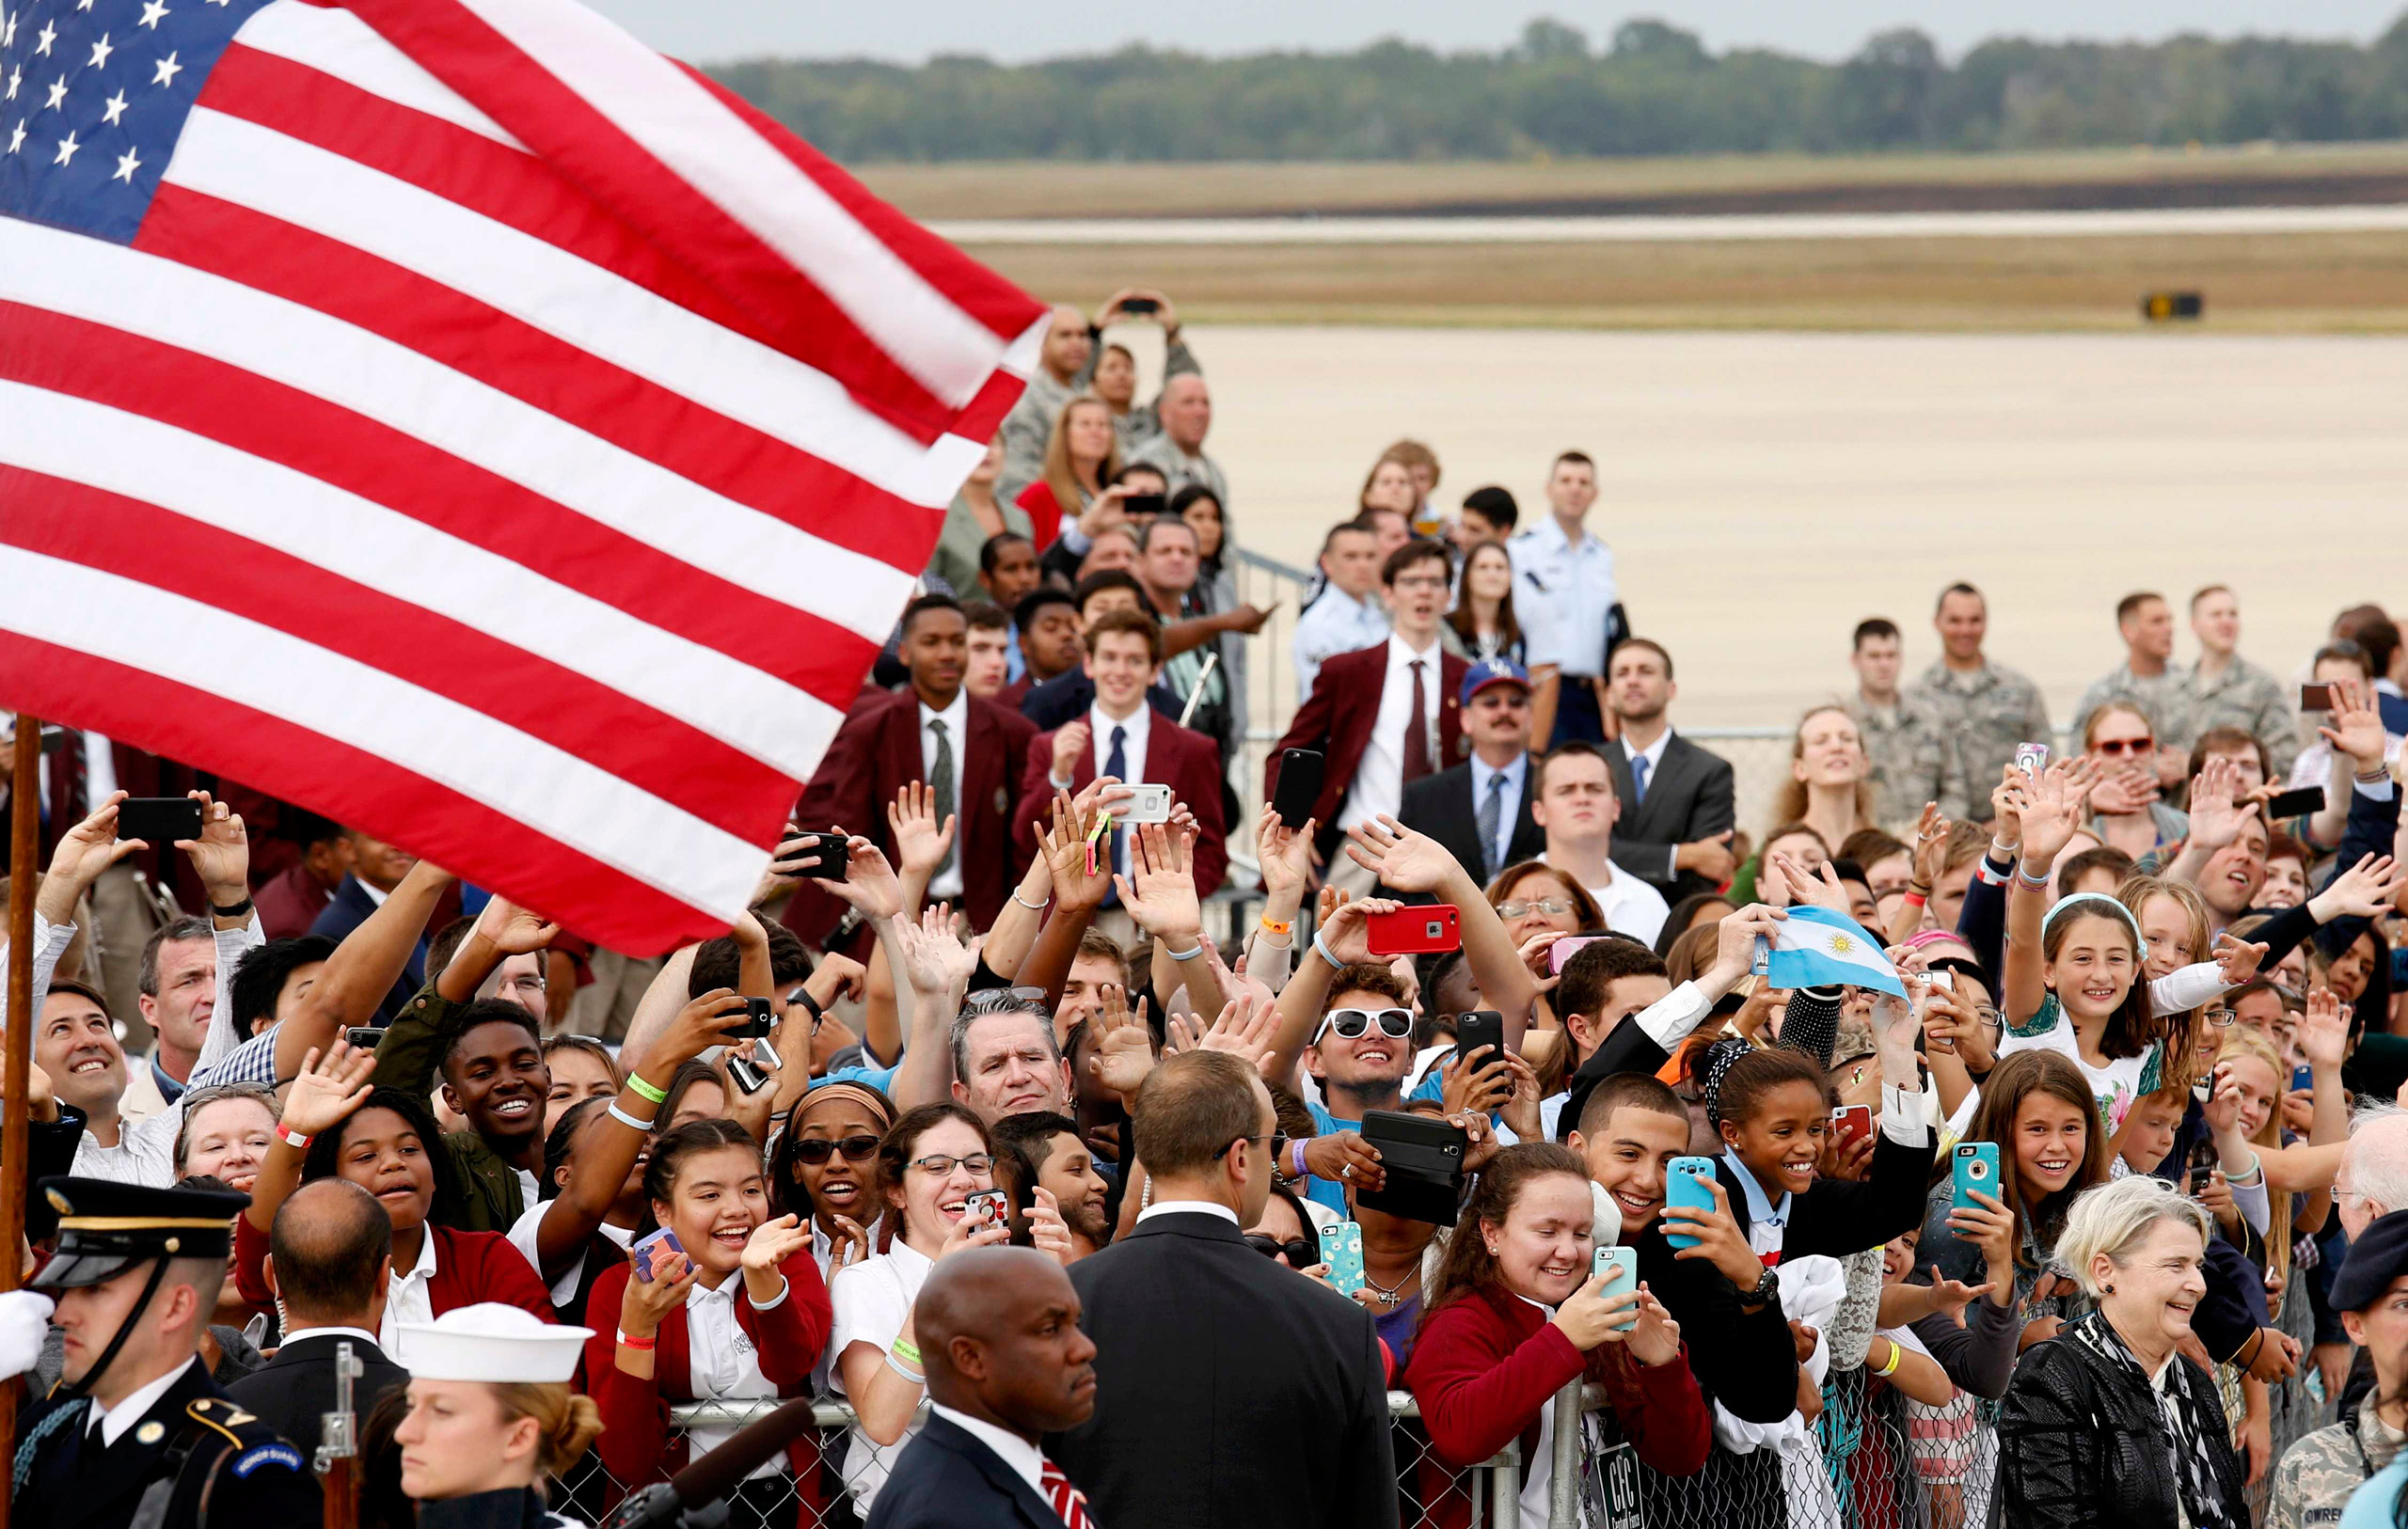 A crowd of supporters cheer as they attend the arrival of Pope Francis at Joint Base Andrews outside Washington, on Sept. 22, 2015.